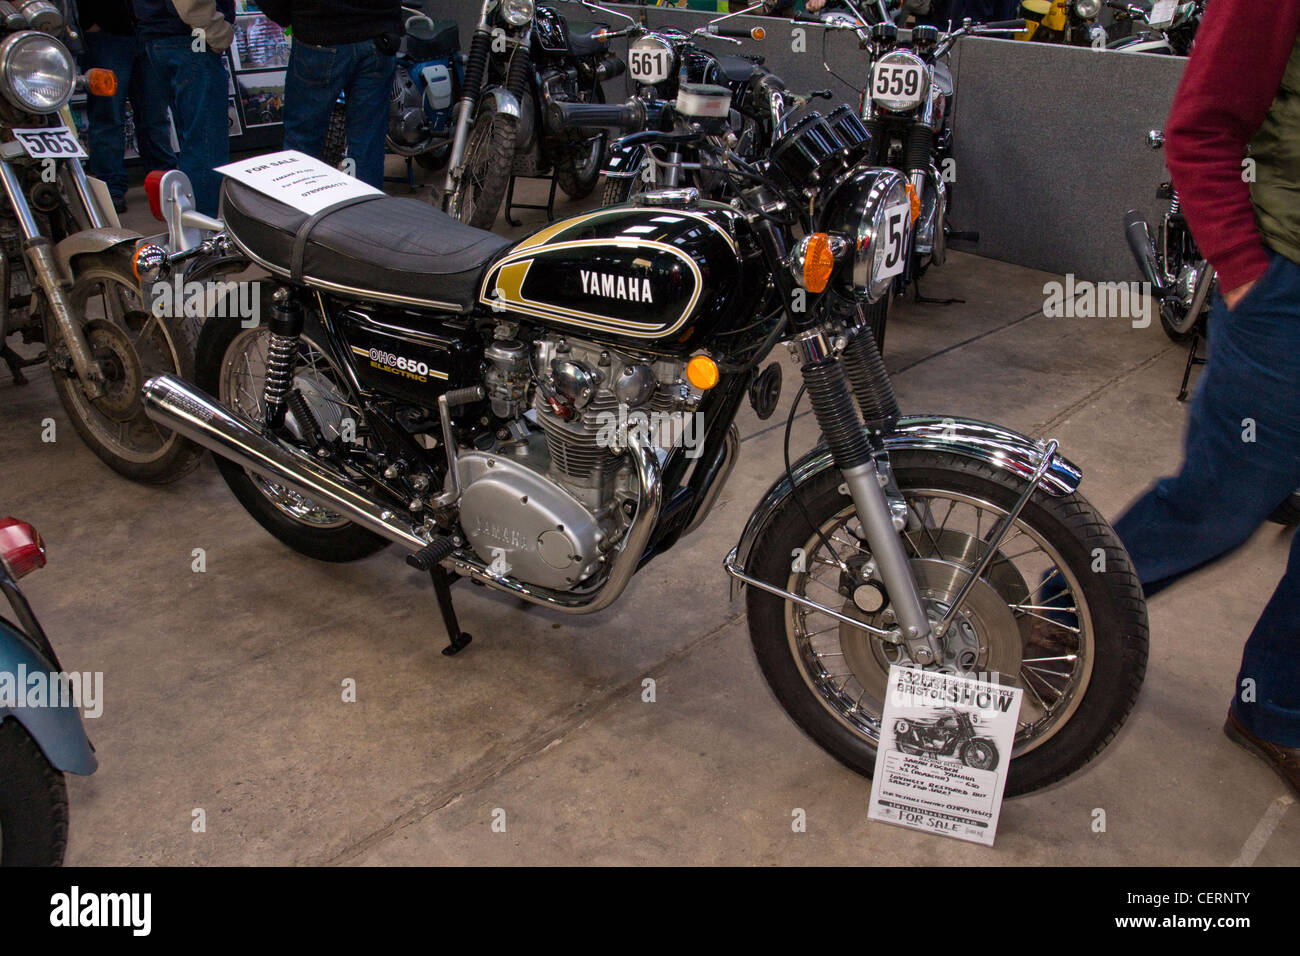 Yamaha XS650 at the Classic bike show. - Stock Image